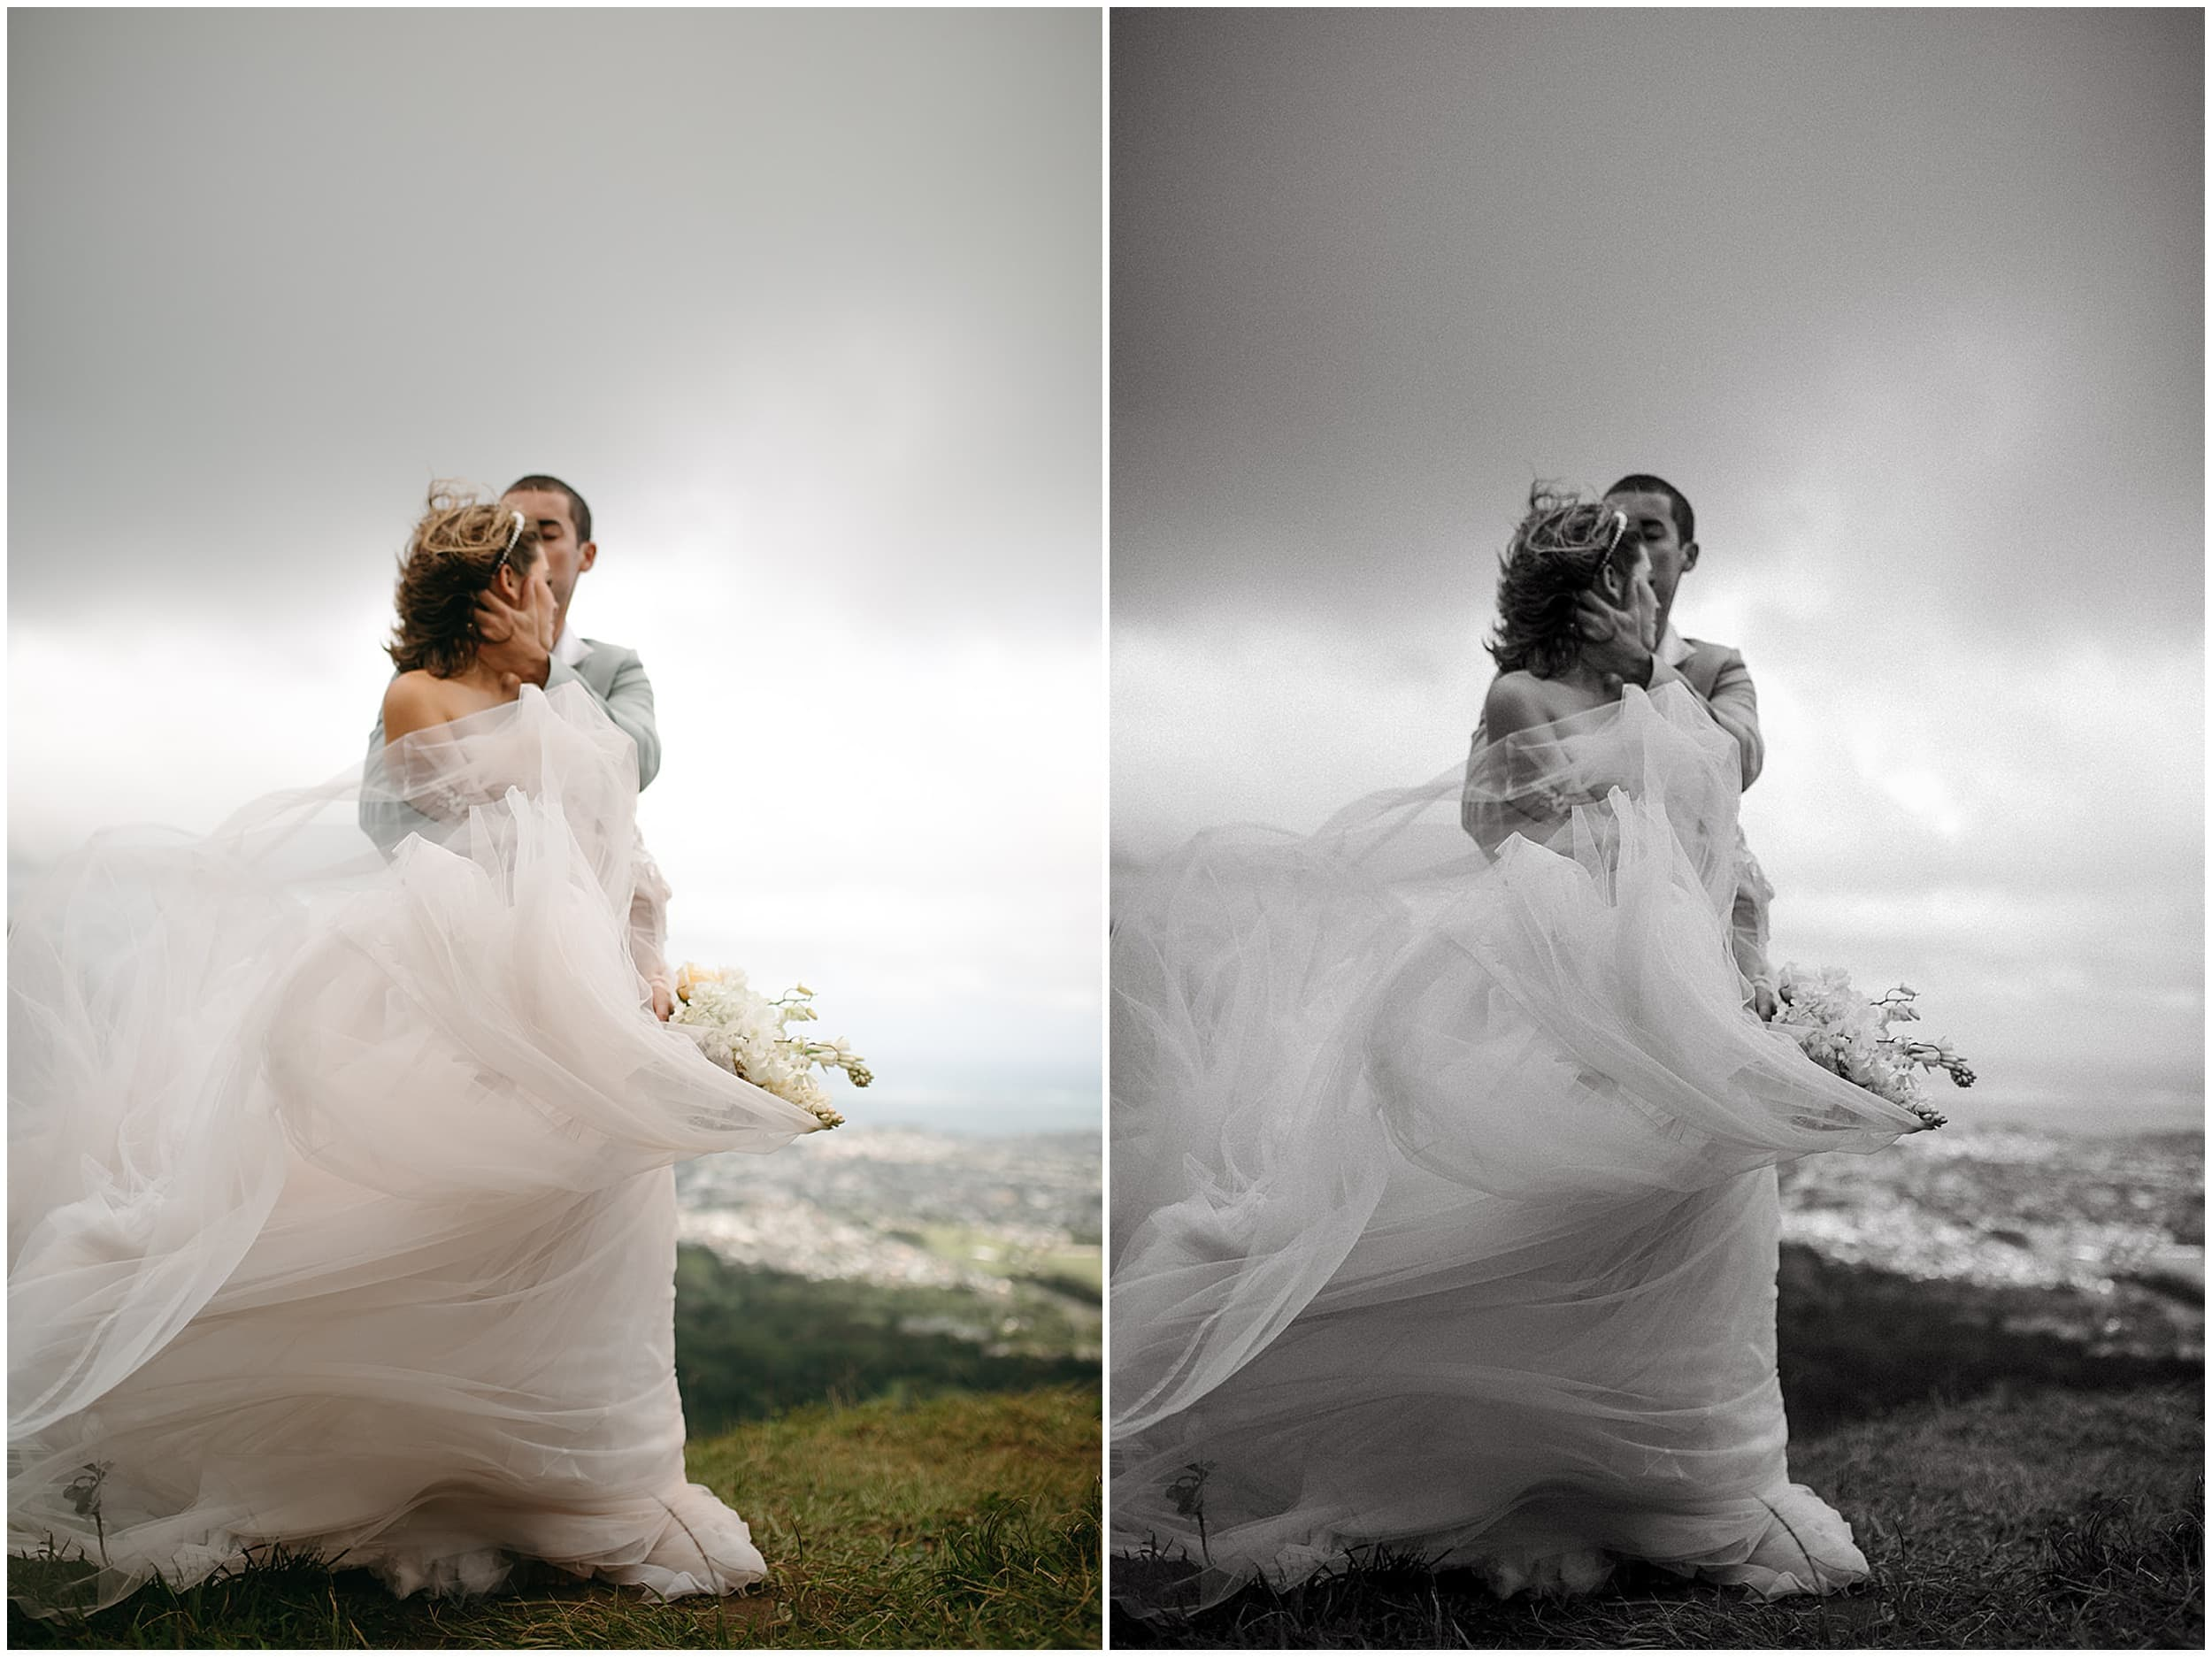 wedding dress moving in the wind